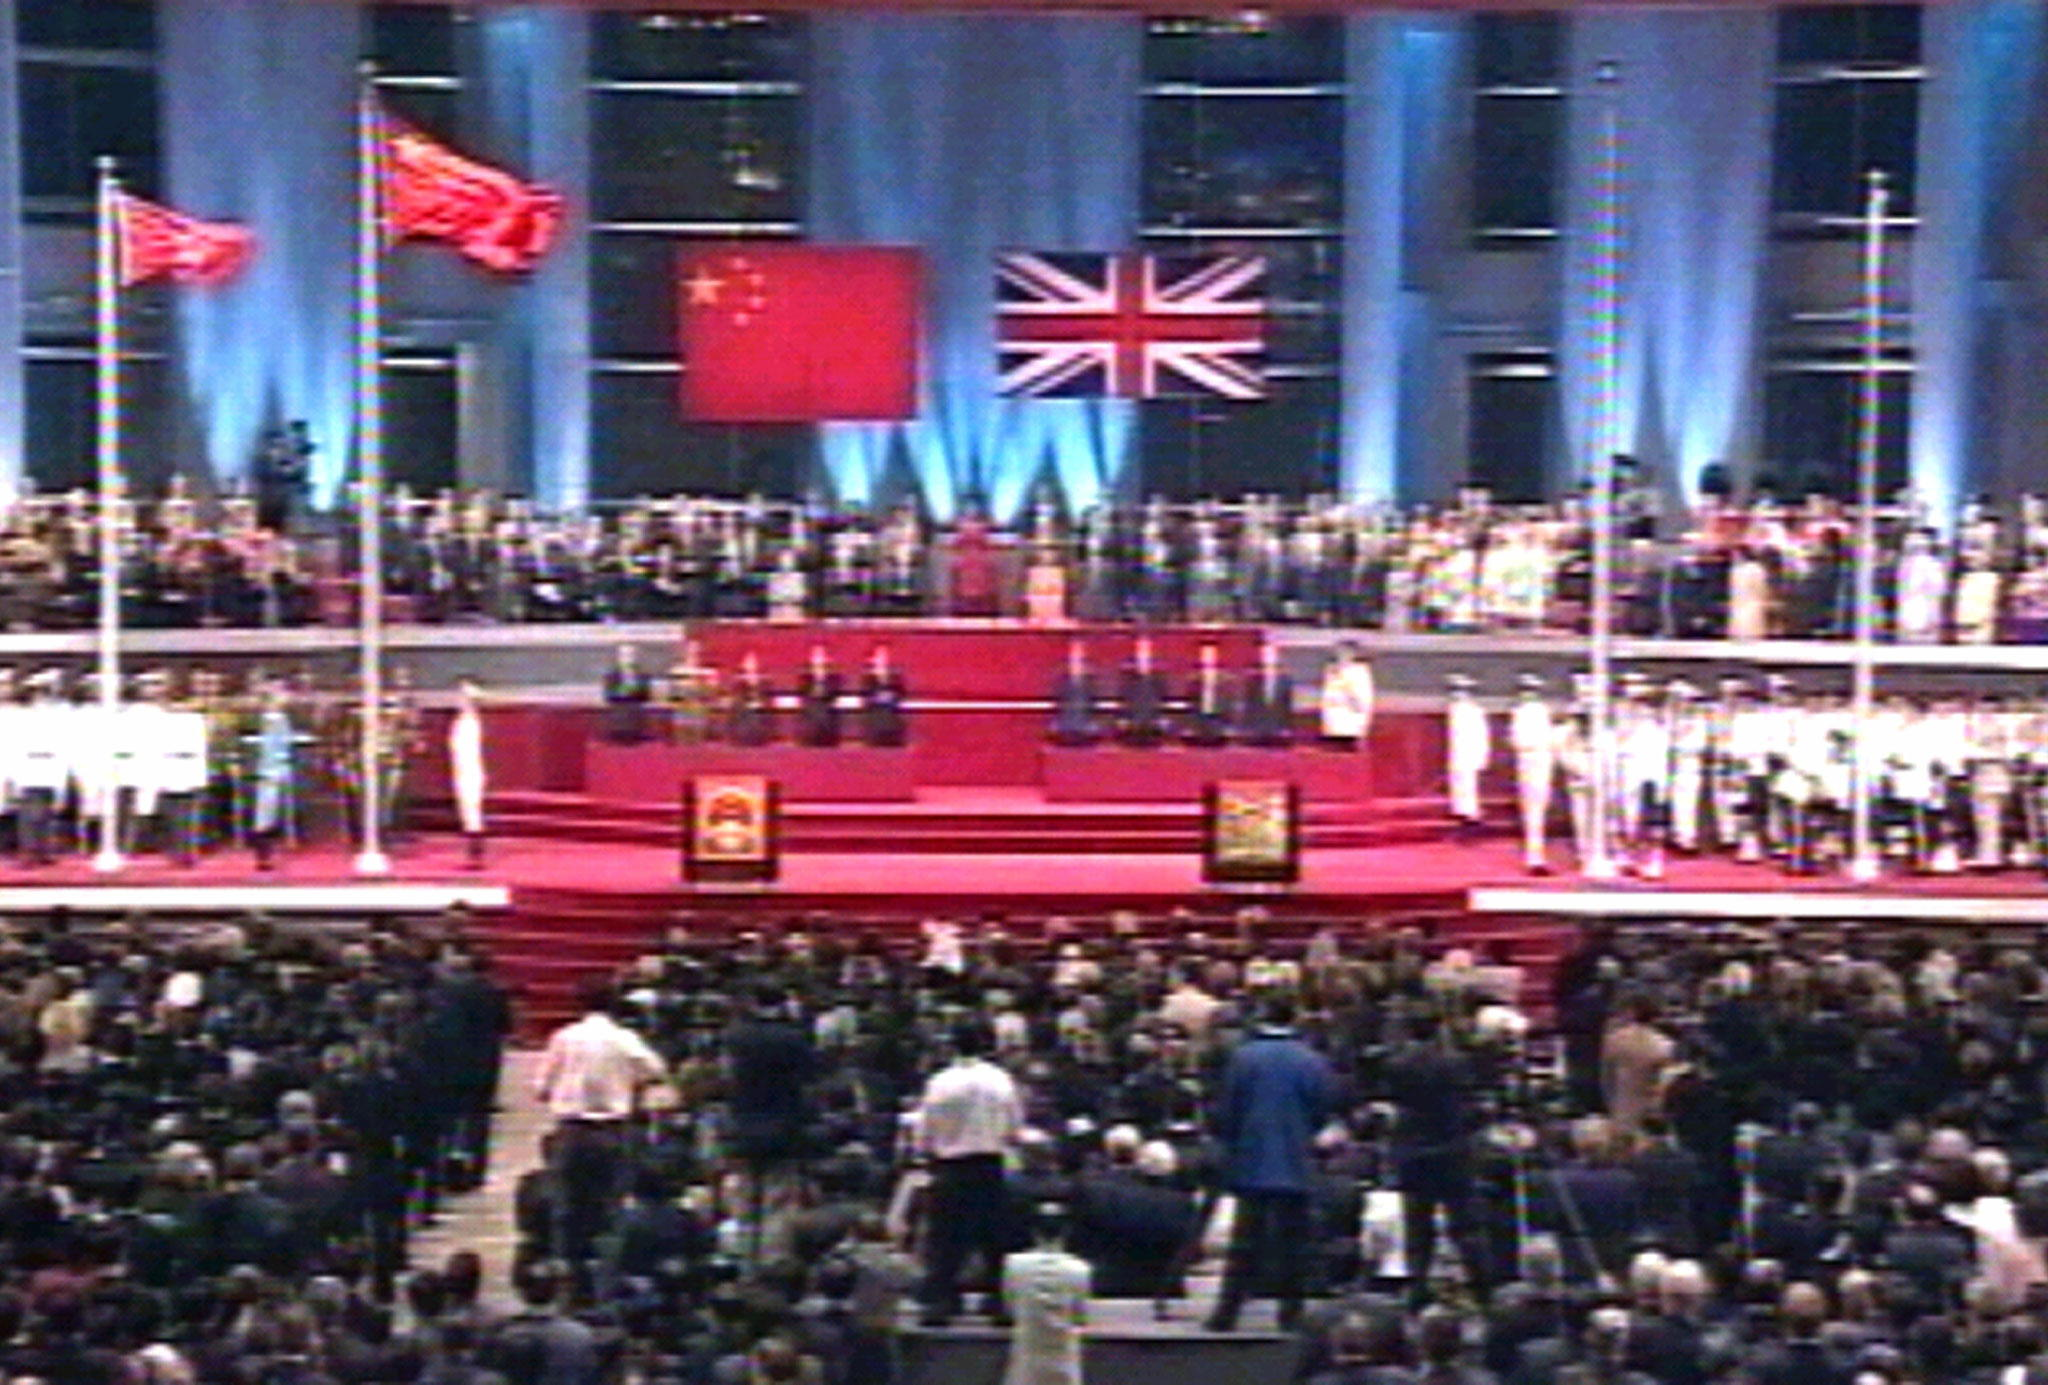 The Chinese and new Special Administrative Region (SAR) of Hong Kong (L) flags fly after they were raised during a handover ceremony June 30. Hong Kong reverted to Chinese rule at midnight June 30 after 156 years of British colonial administration.